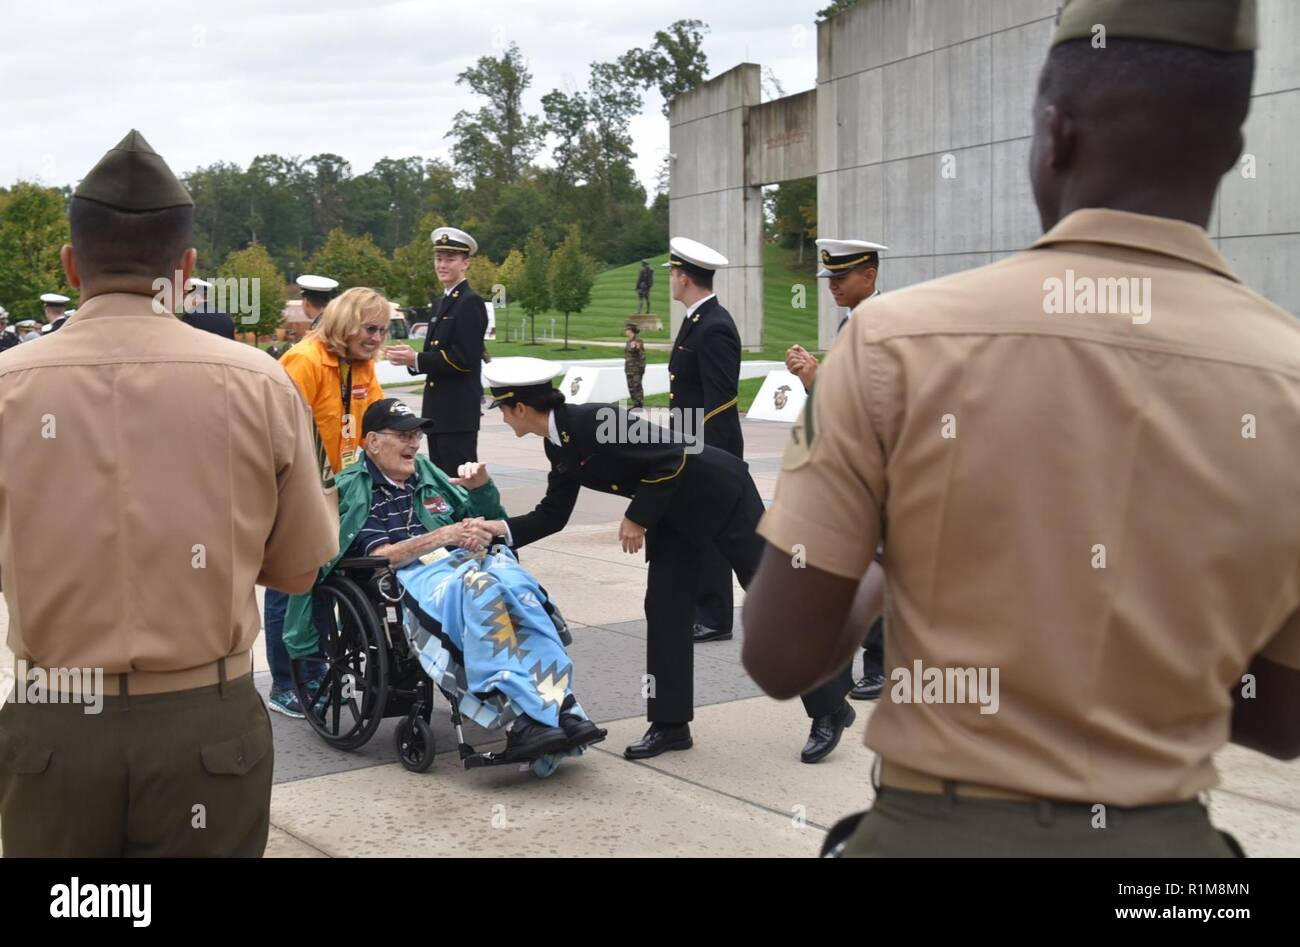 Honor Flight, Korean War veteran, memorial, museum, service members, Vietnam Veteran, welcome home, WWII, WWII veteran - Stock Image